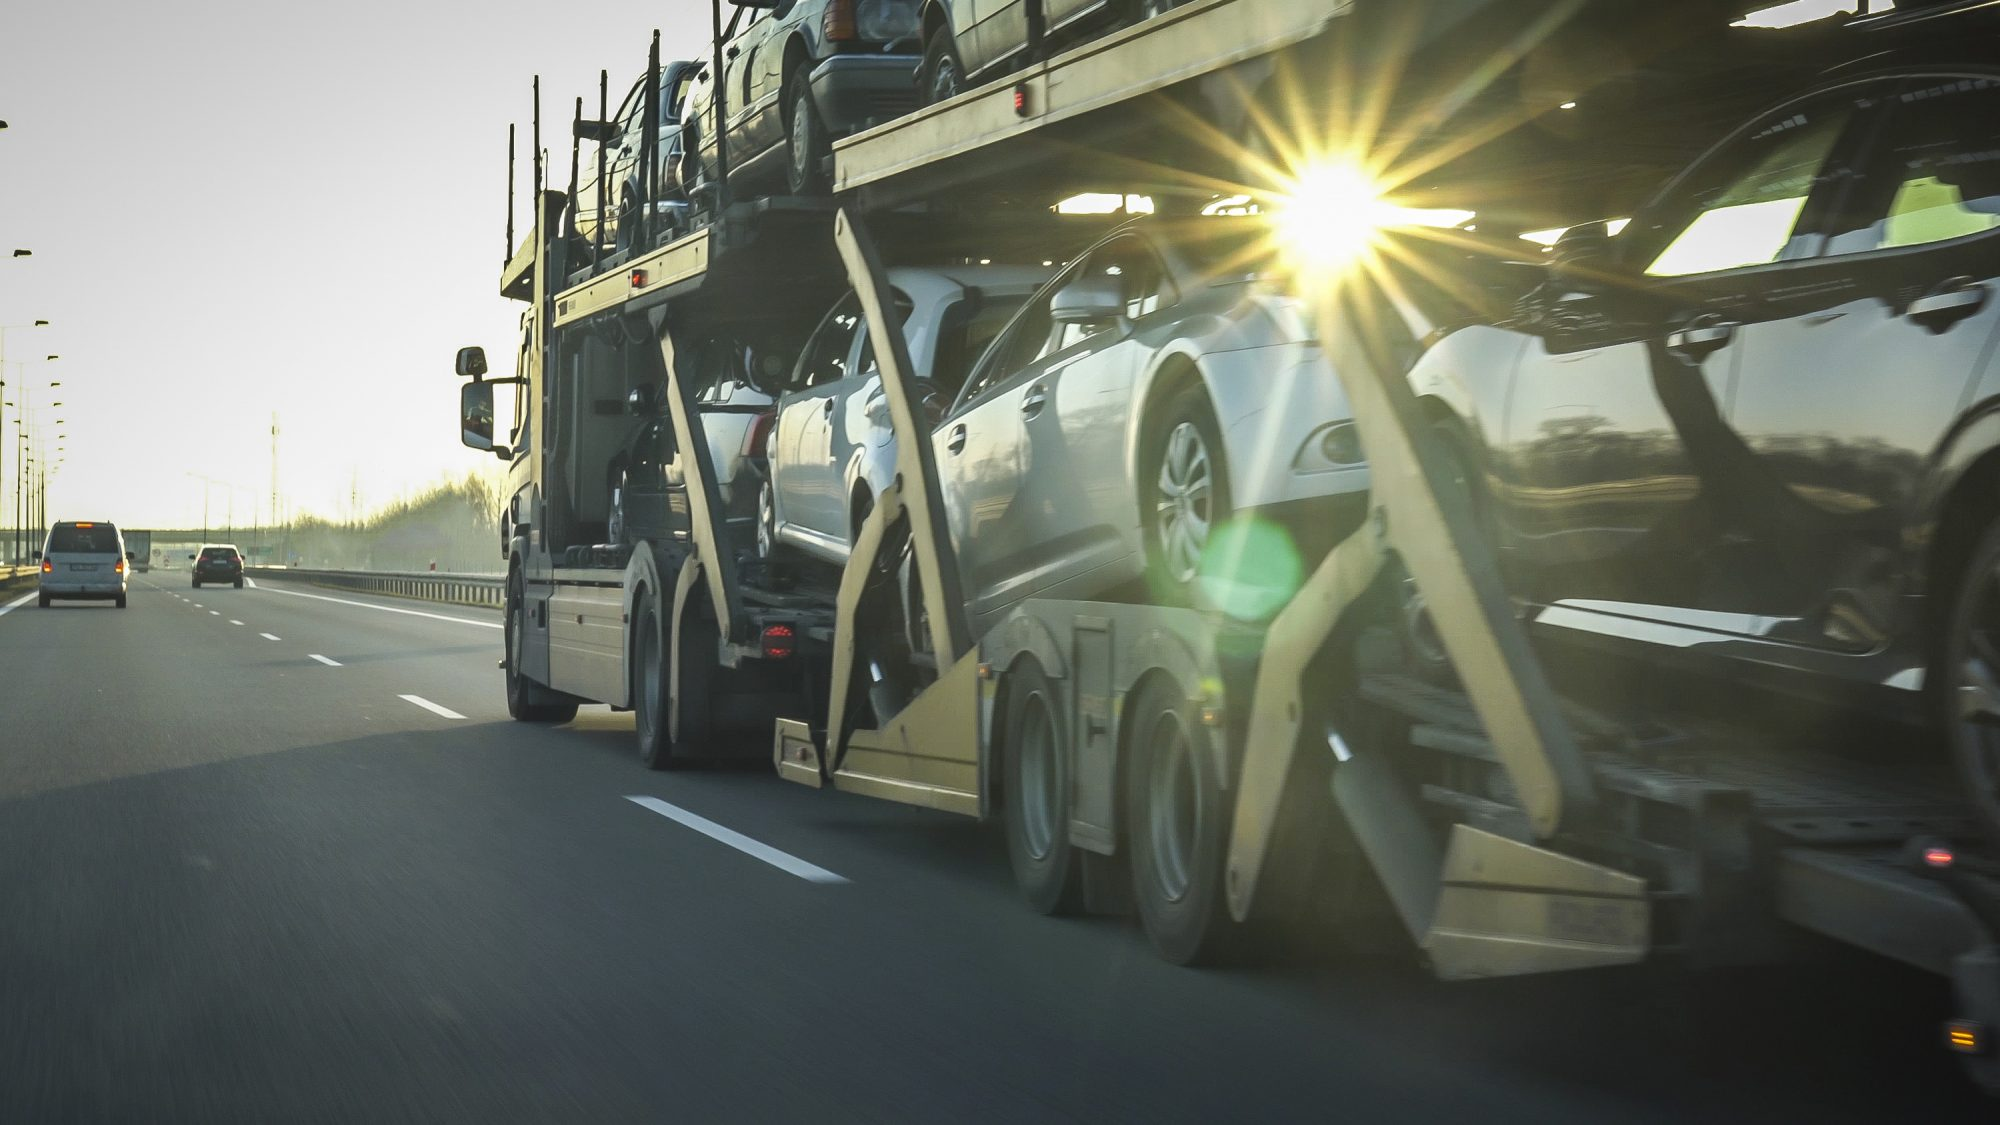 Car transporter trailer loaded with cars